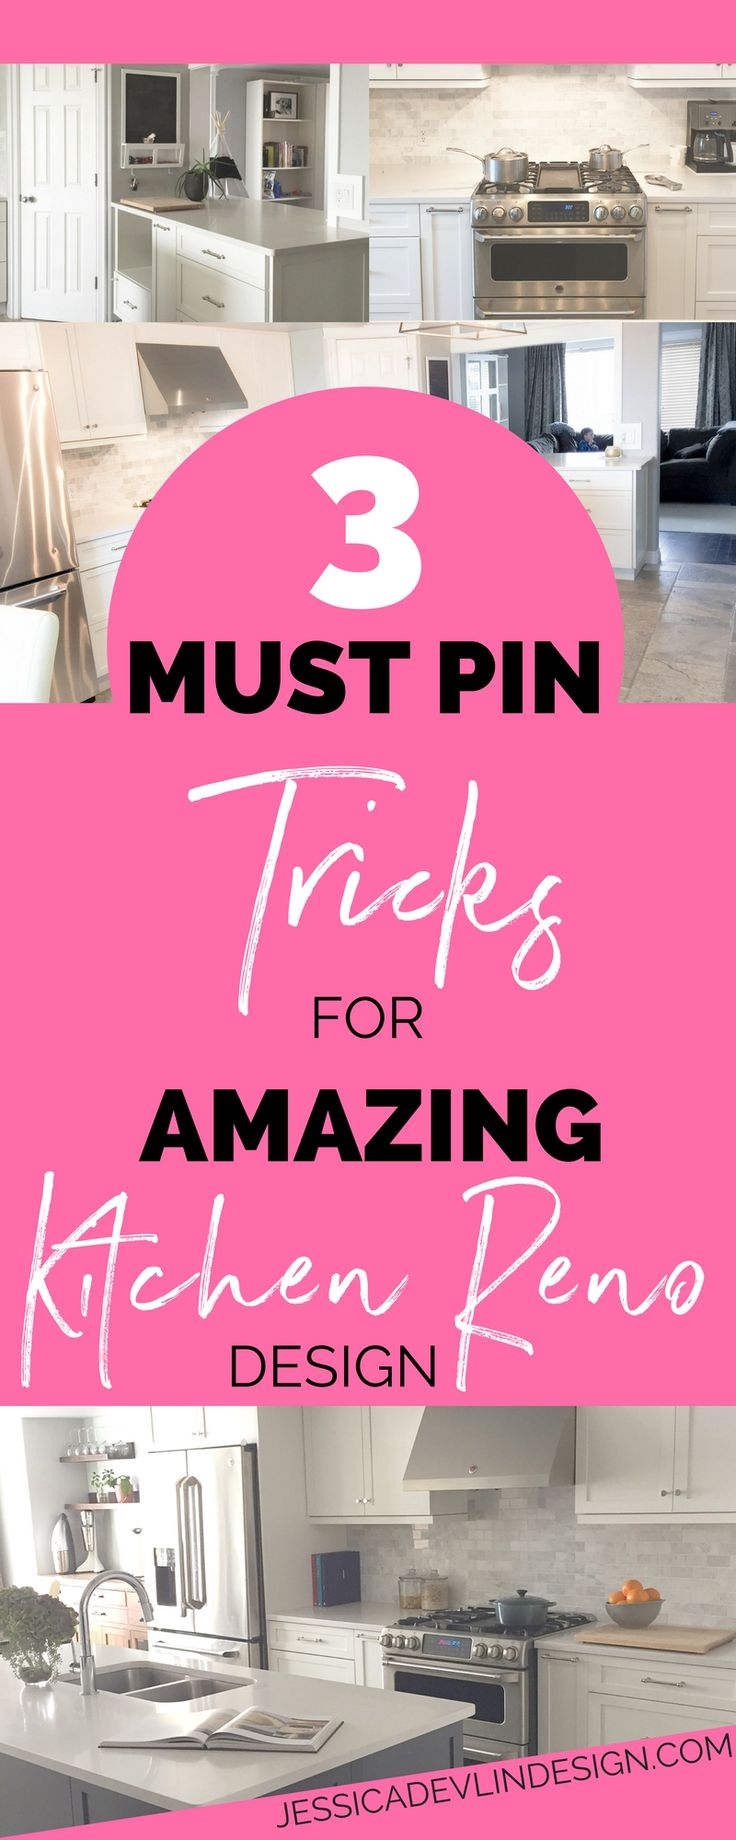 Kitchen Design, Kitchen renovating, Design tips, Tricks to get the most out of your kitchen.